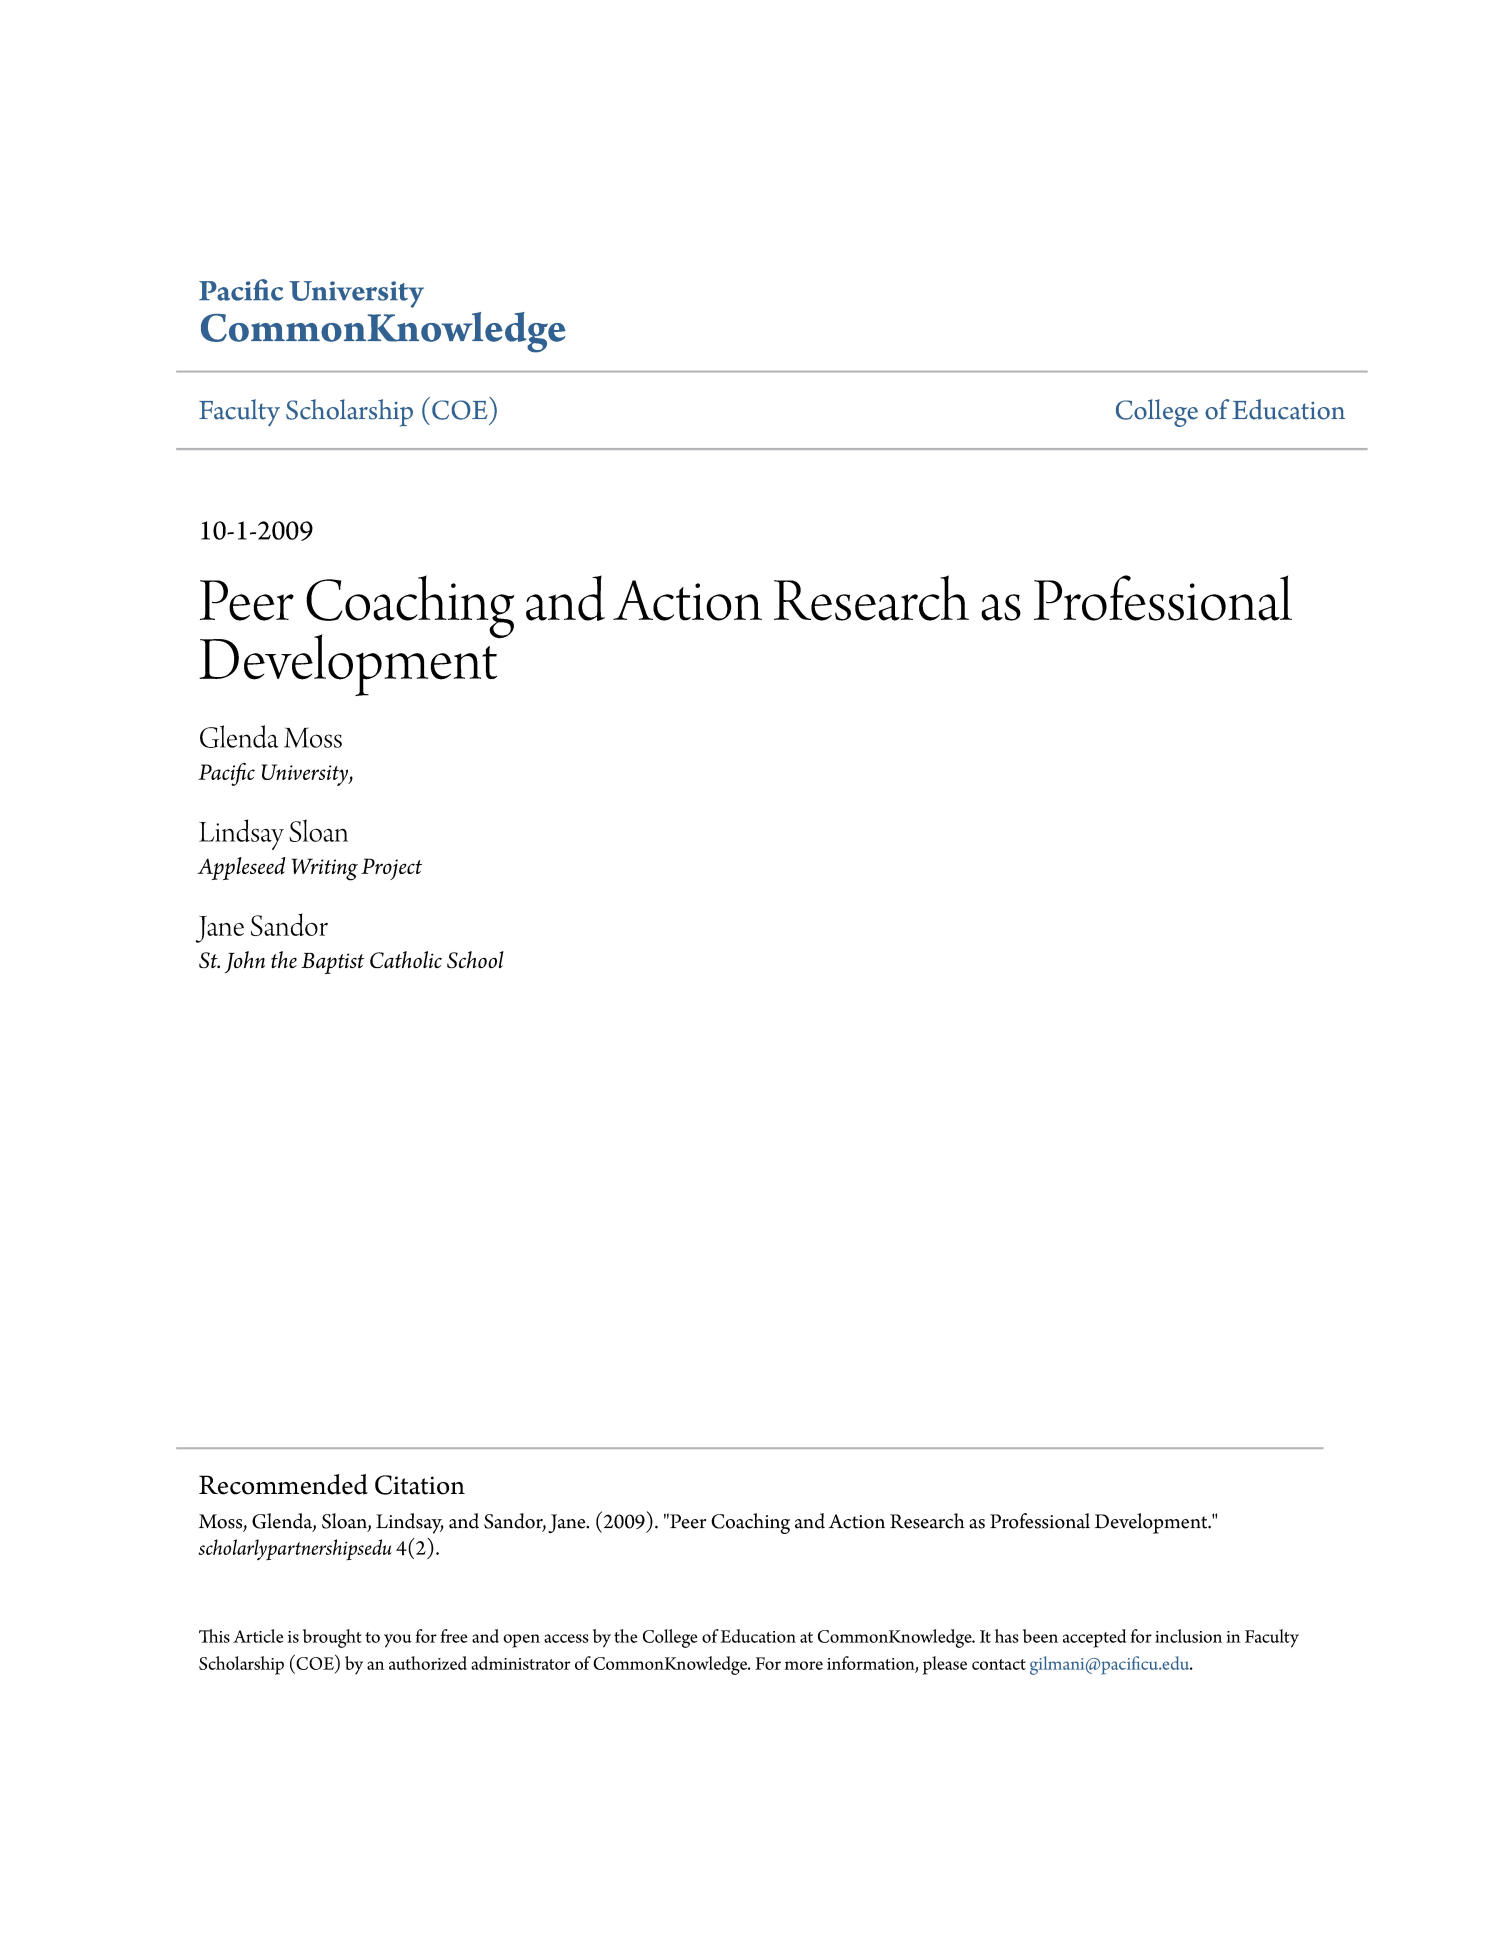 Peer Coaching and Action Research as Professional Development                                                                                                      Title Page